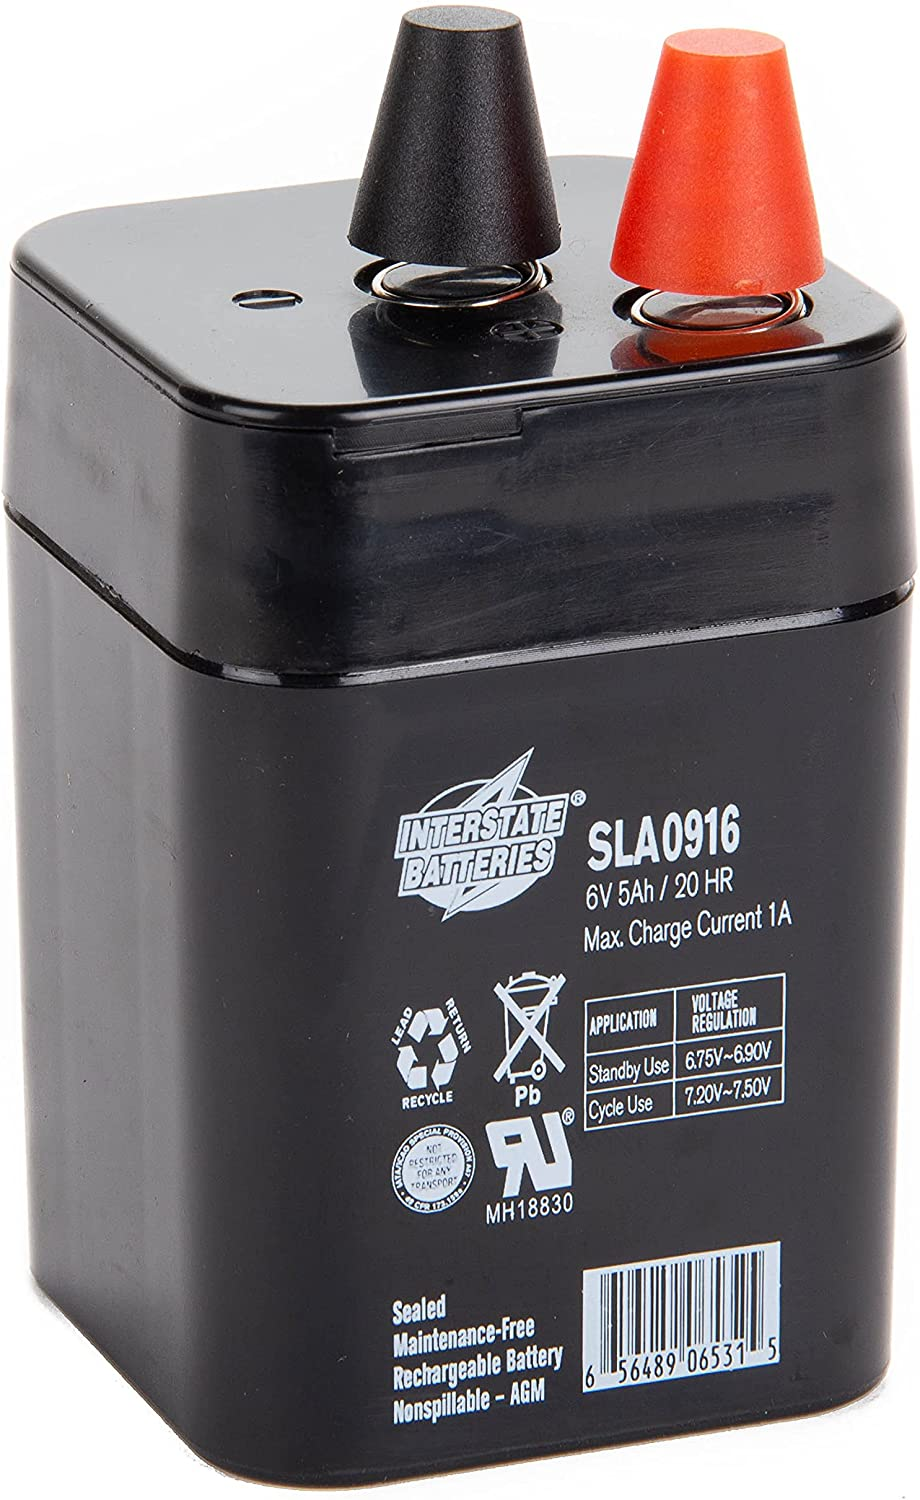 Max 58% OFF Interstate Batteries Outlet ☆ Free Shipping Power Patrol 6V 5Ah Battery Seale SLA0916